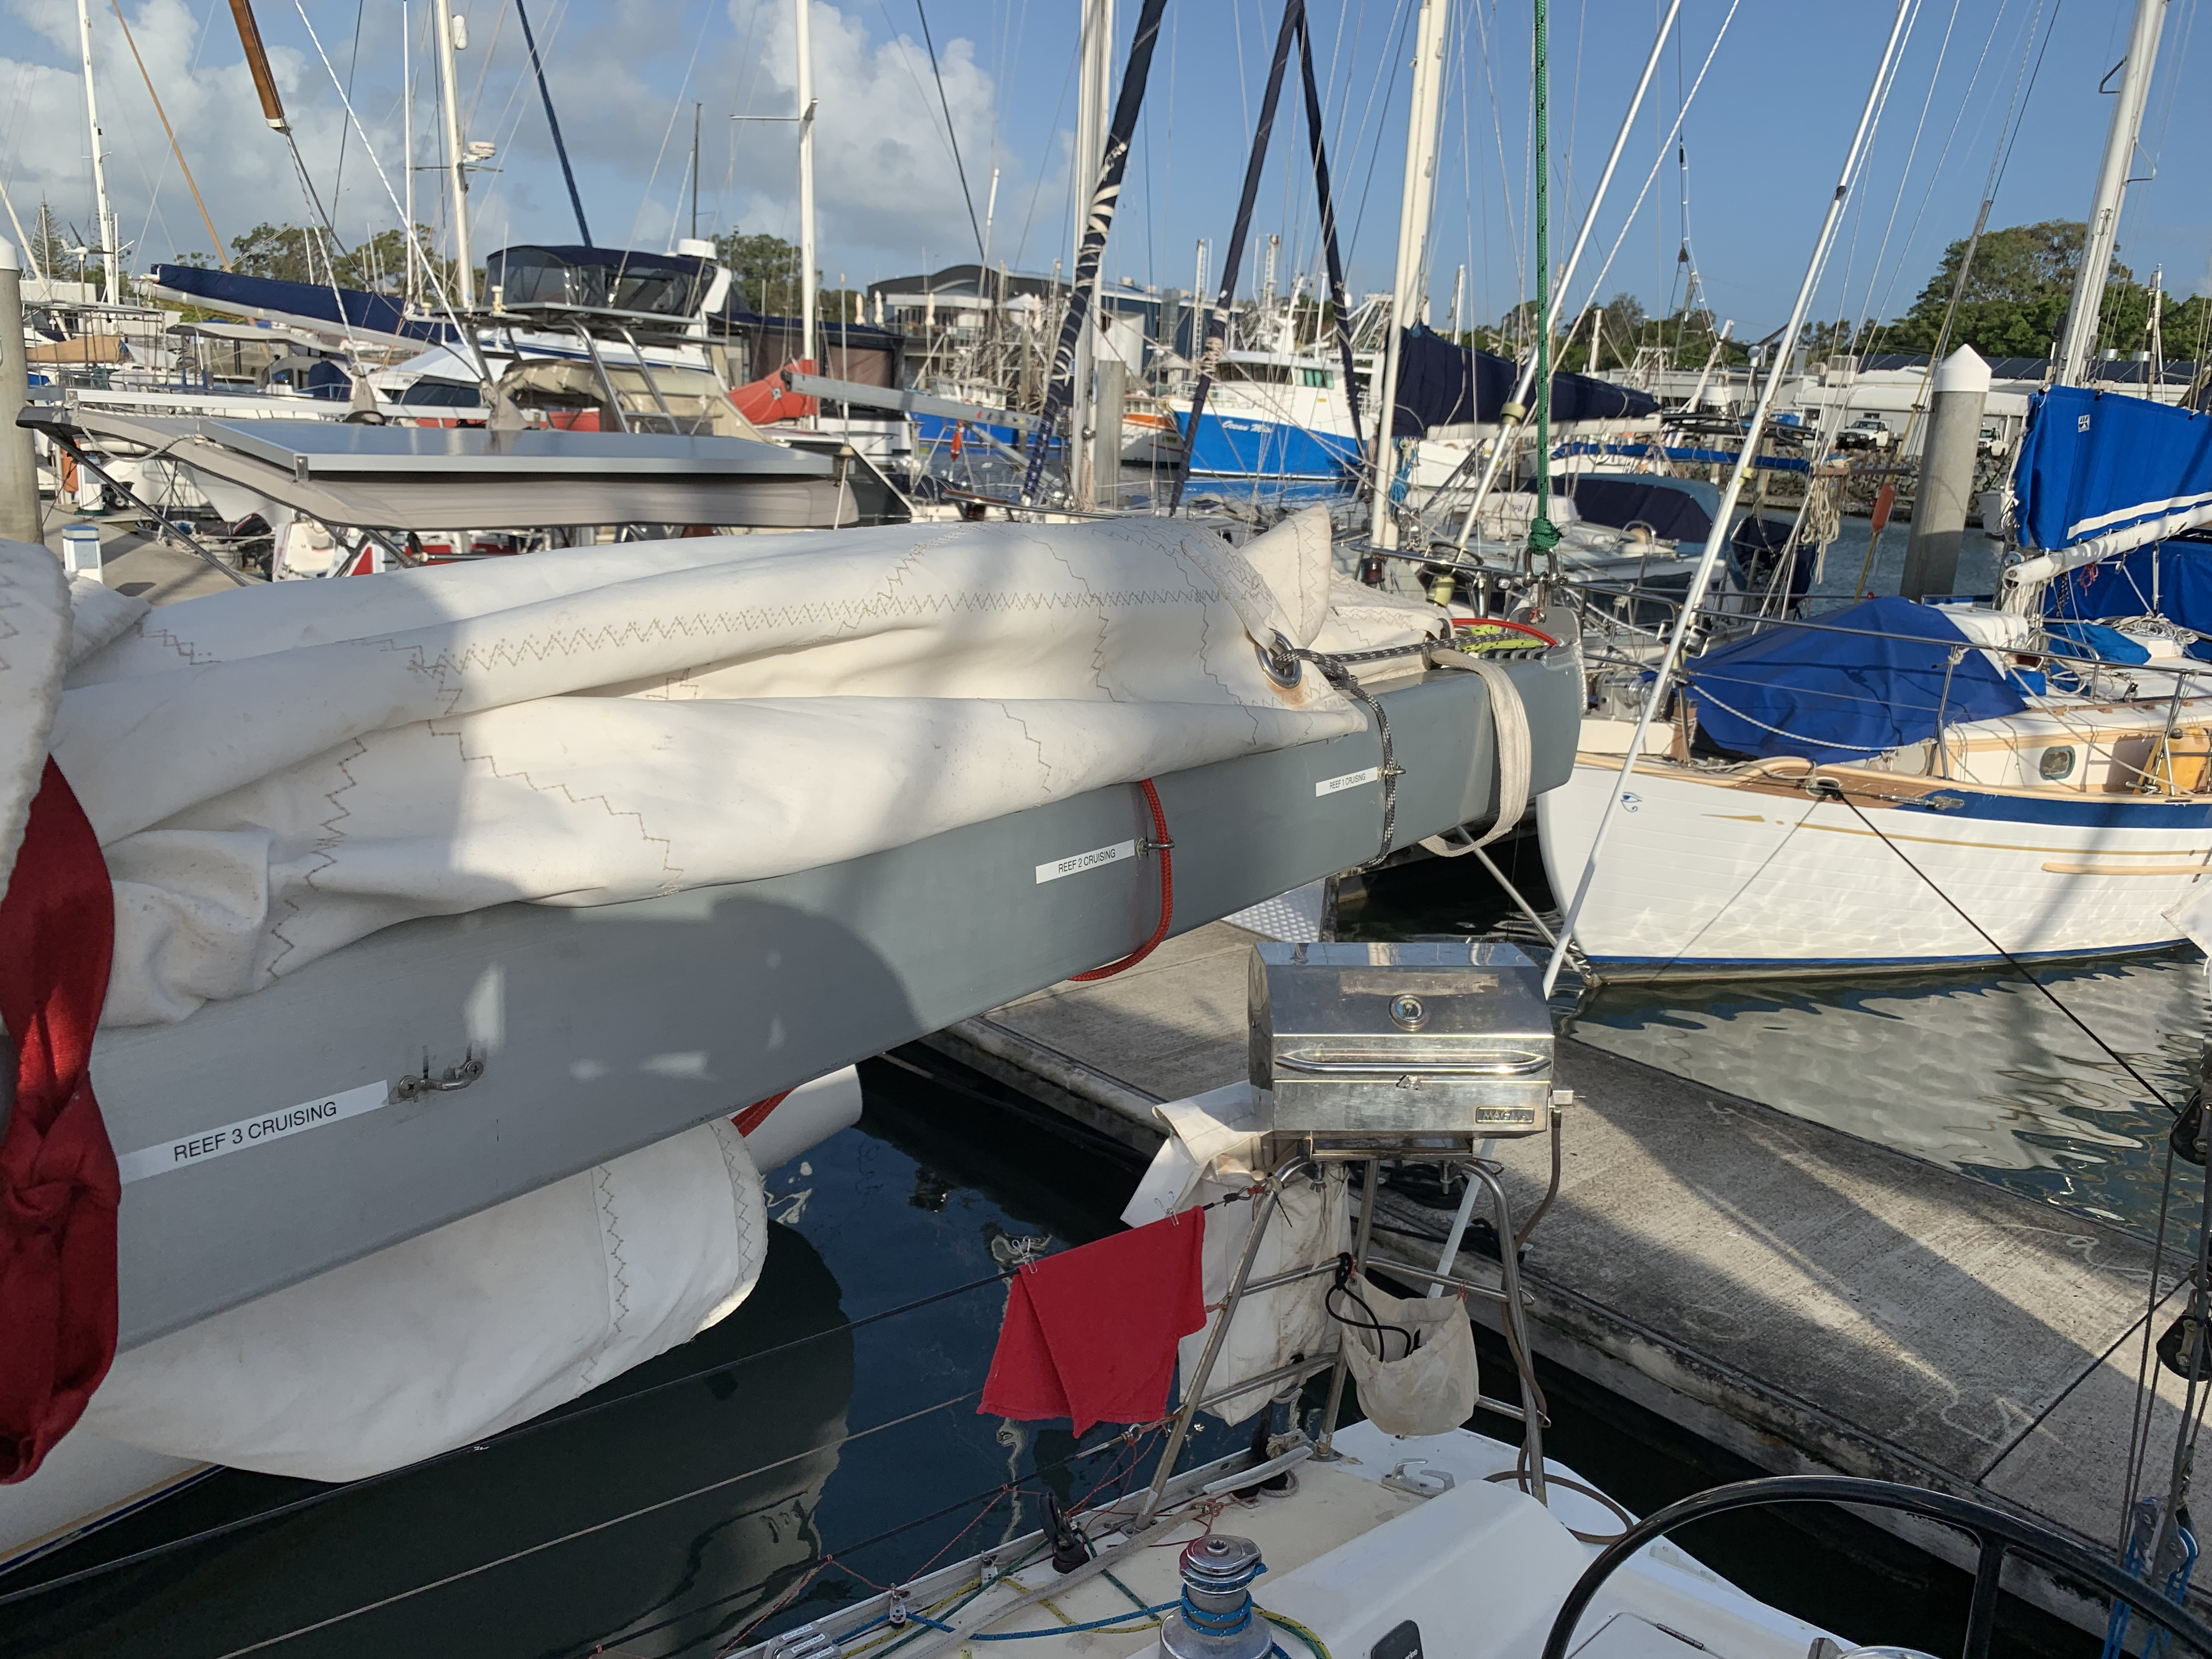 reefing saddles cruising by three